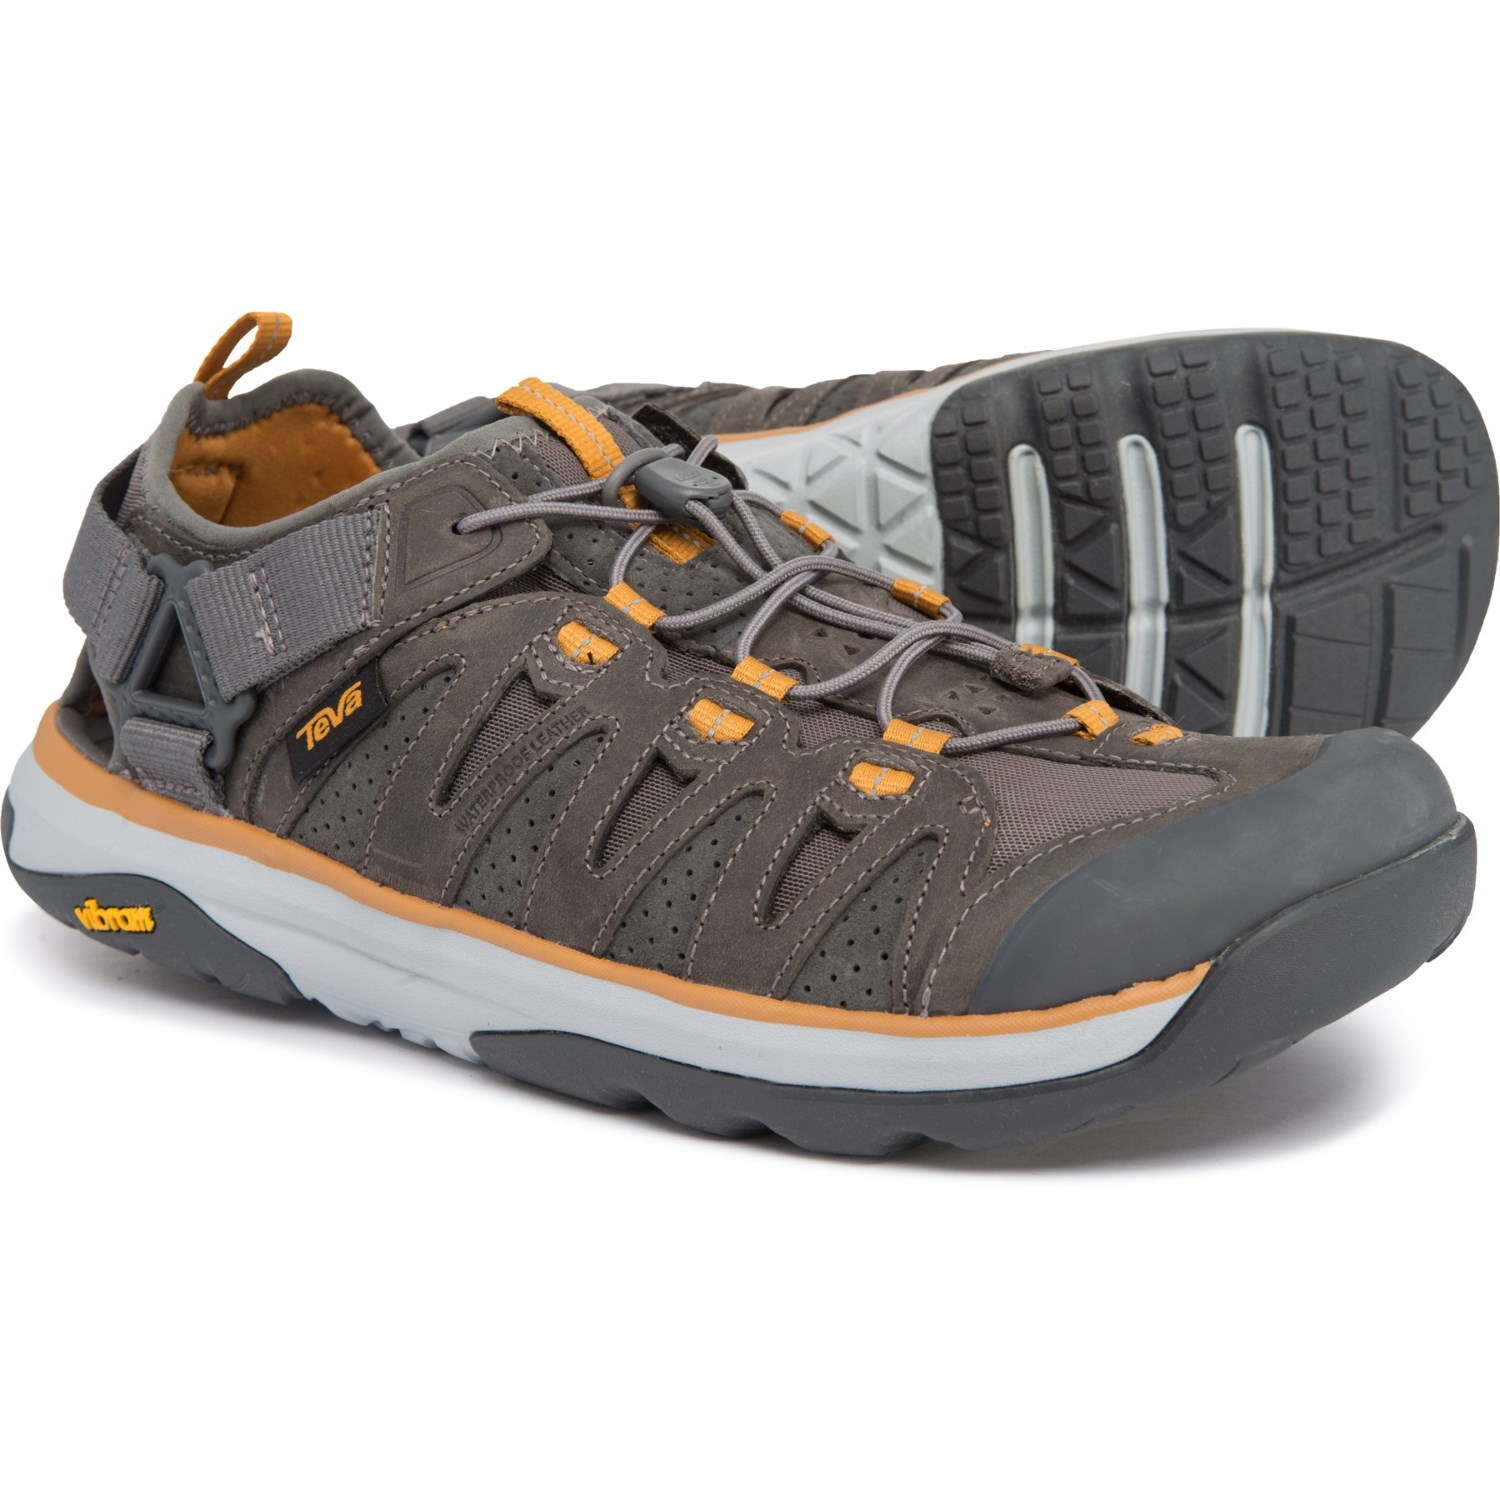 77225f56e Teva Terra-Float Active Lace Water Shoes (For Men) in Charcoal Grey